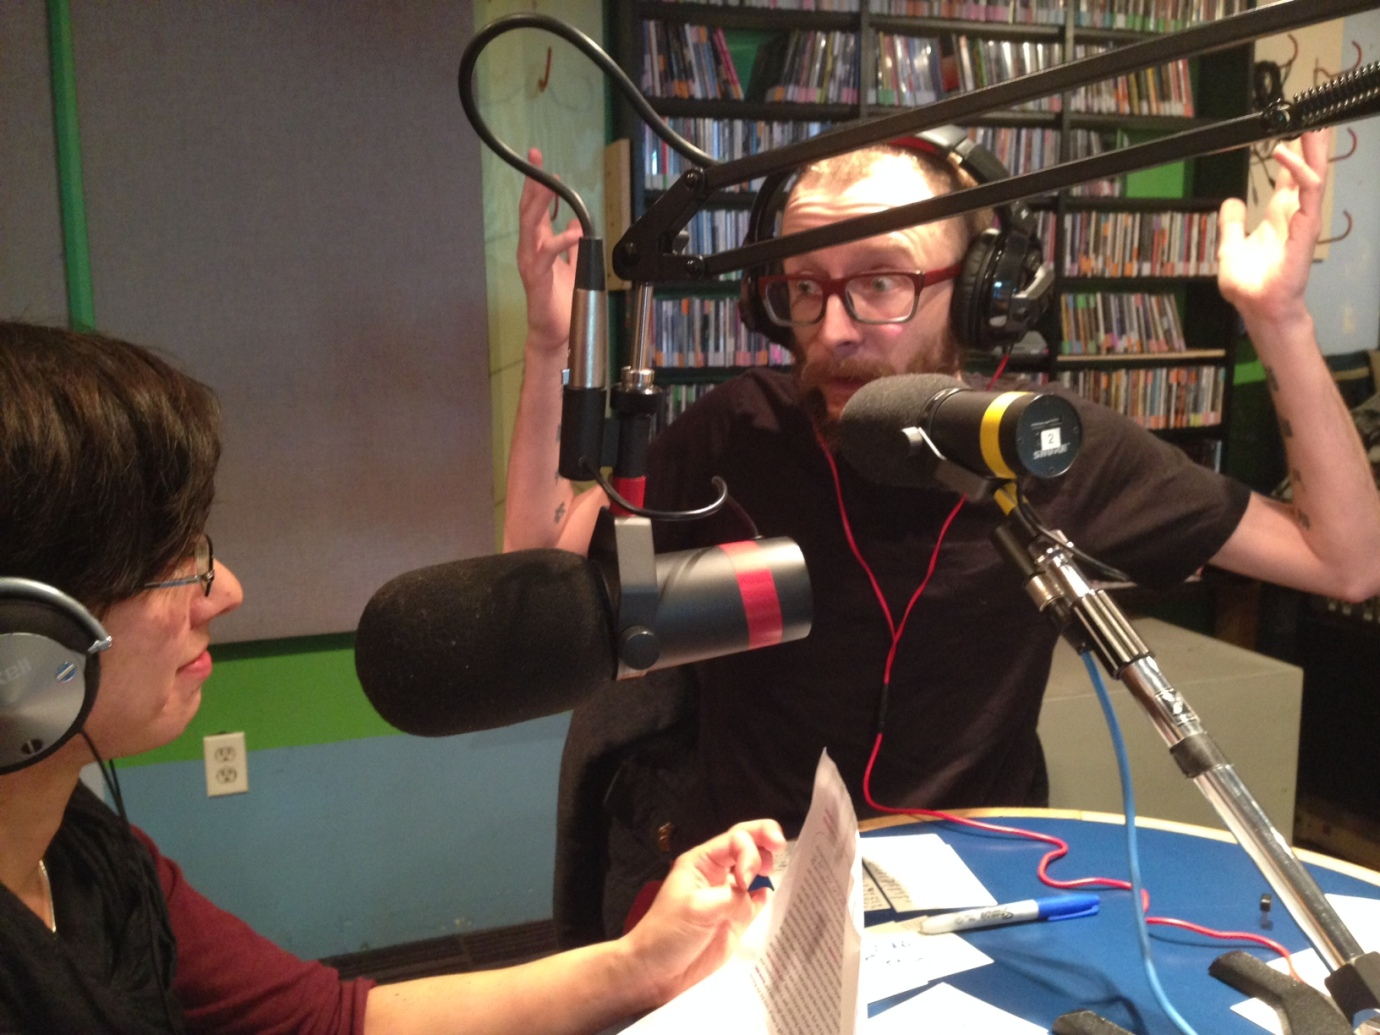 Justin flails his arms in conversation with Emily in the radio studio.